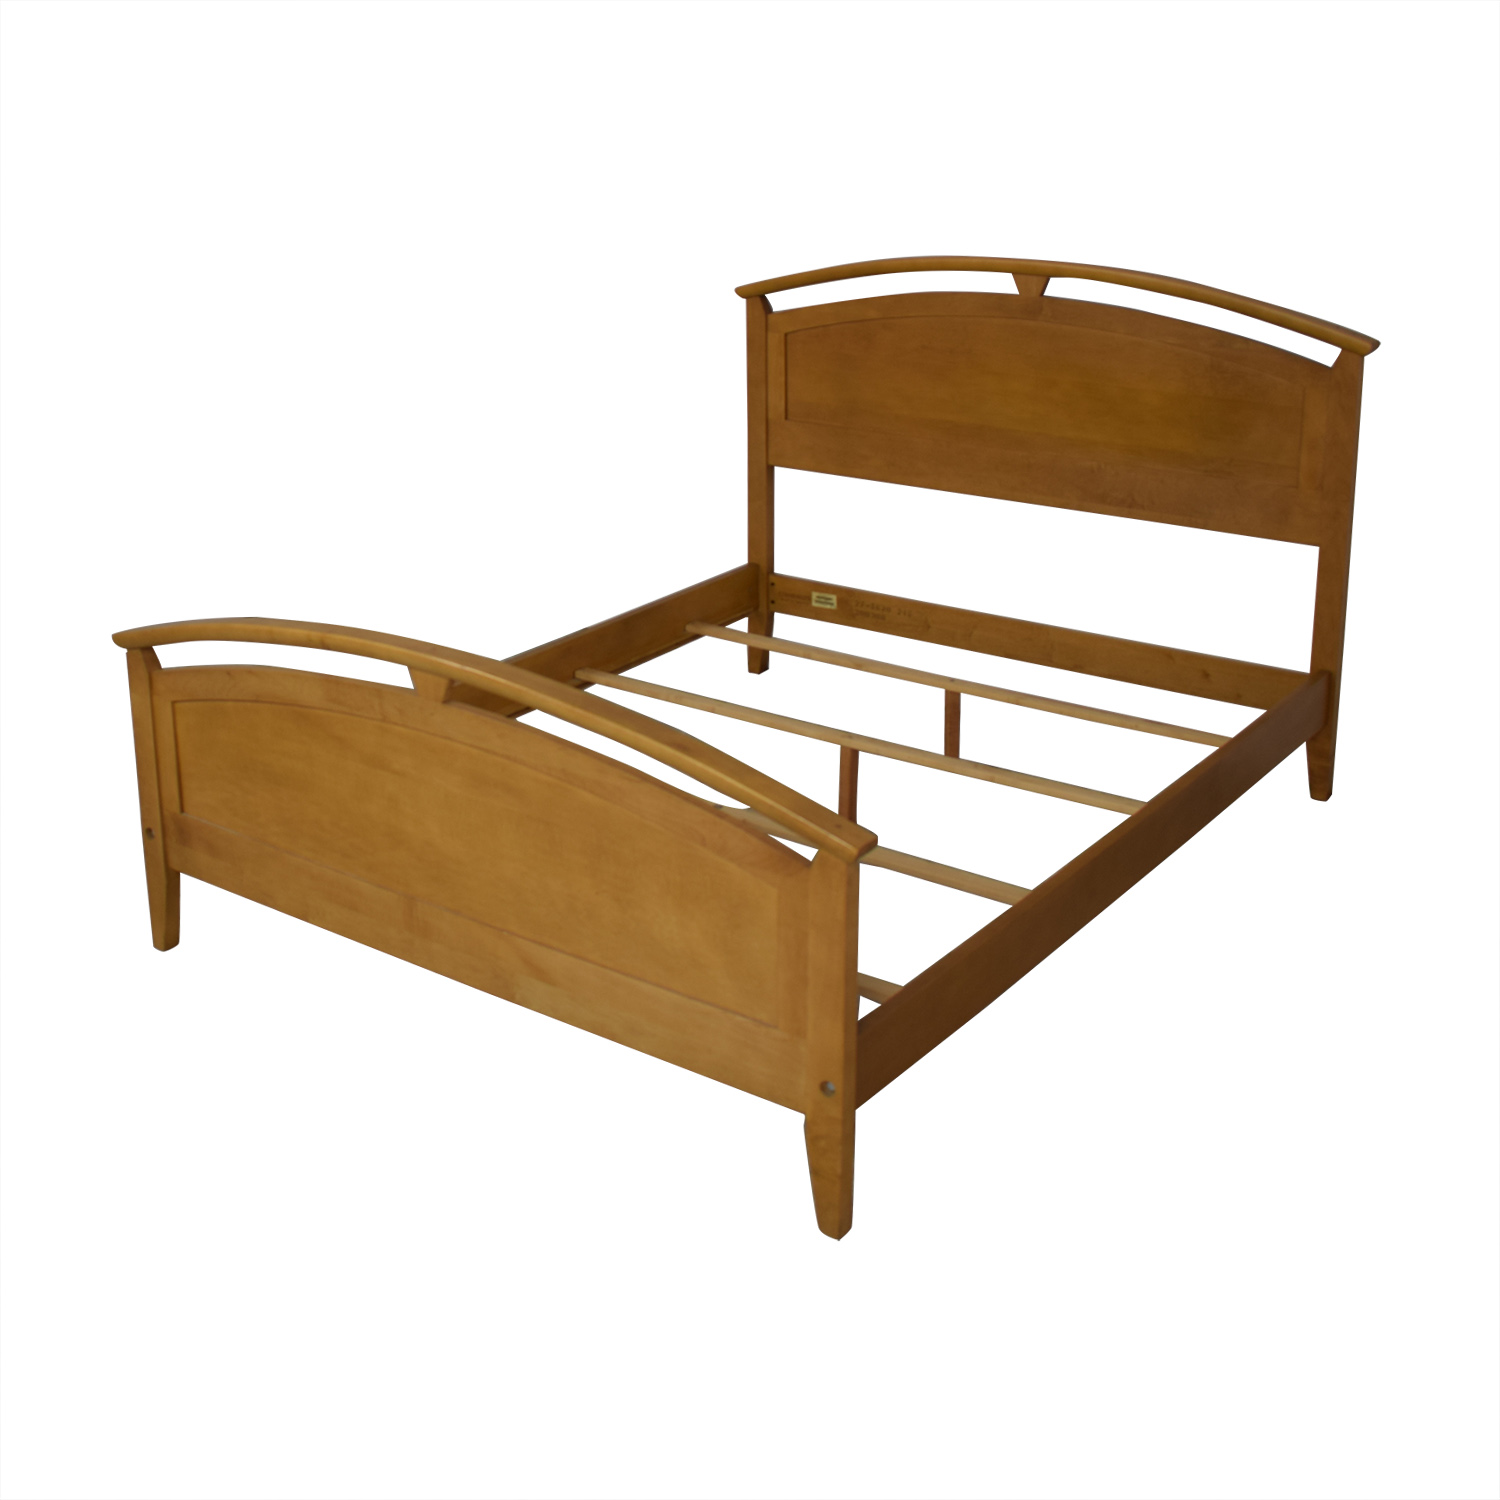 Ethan Allen Ethan Allen Elements Queen Arched Panel Wood Bed used